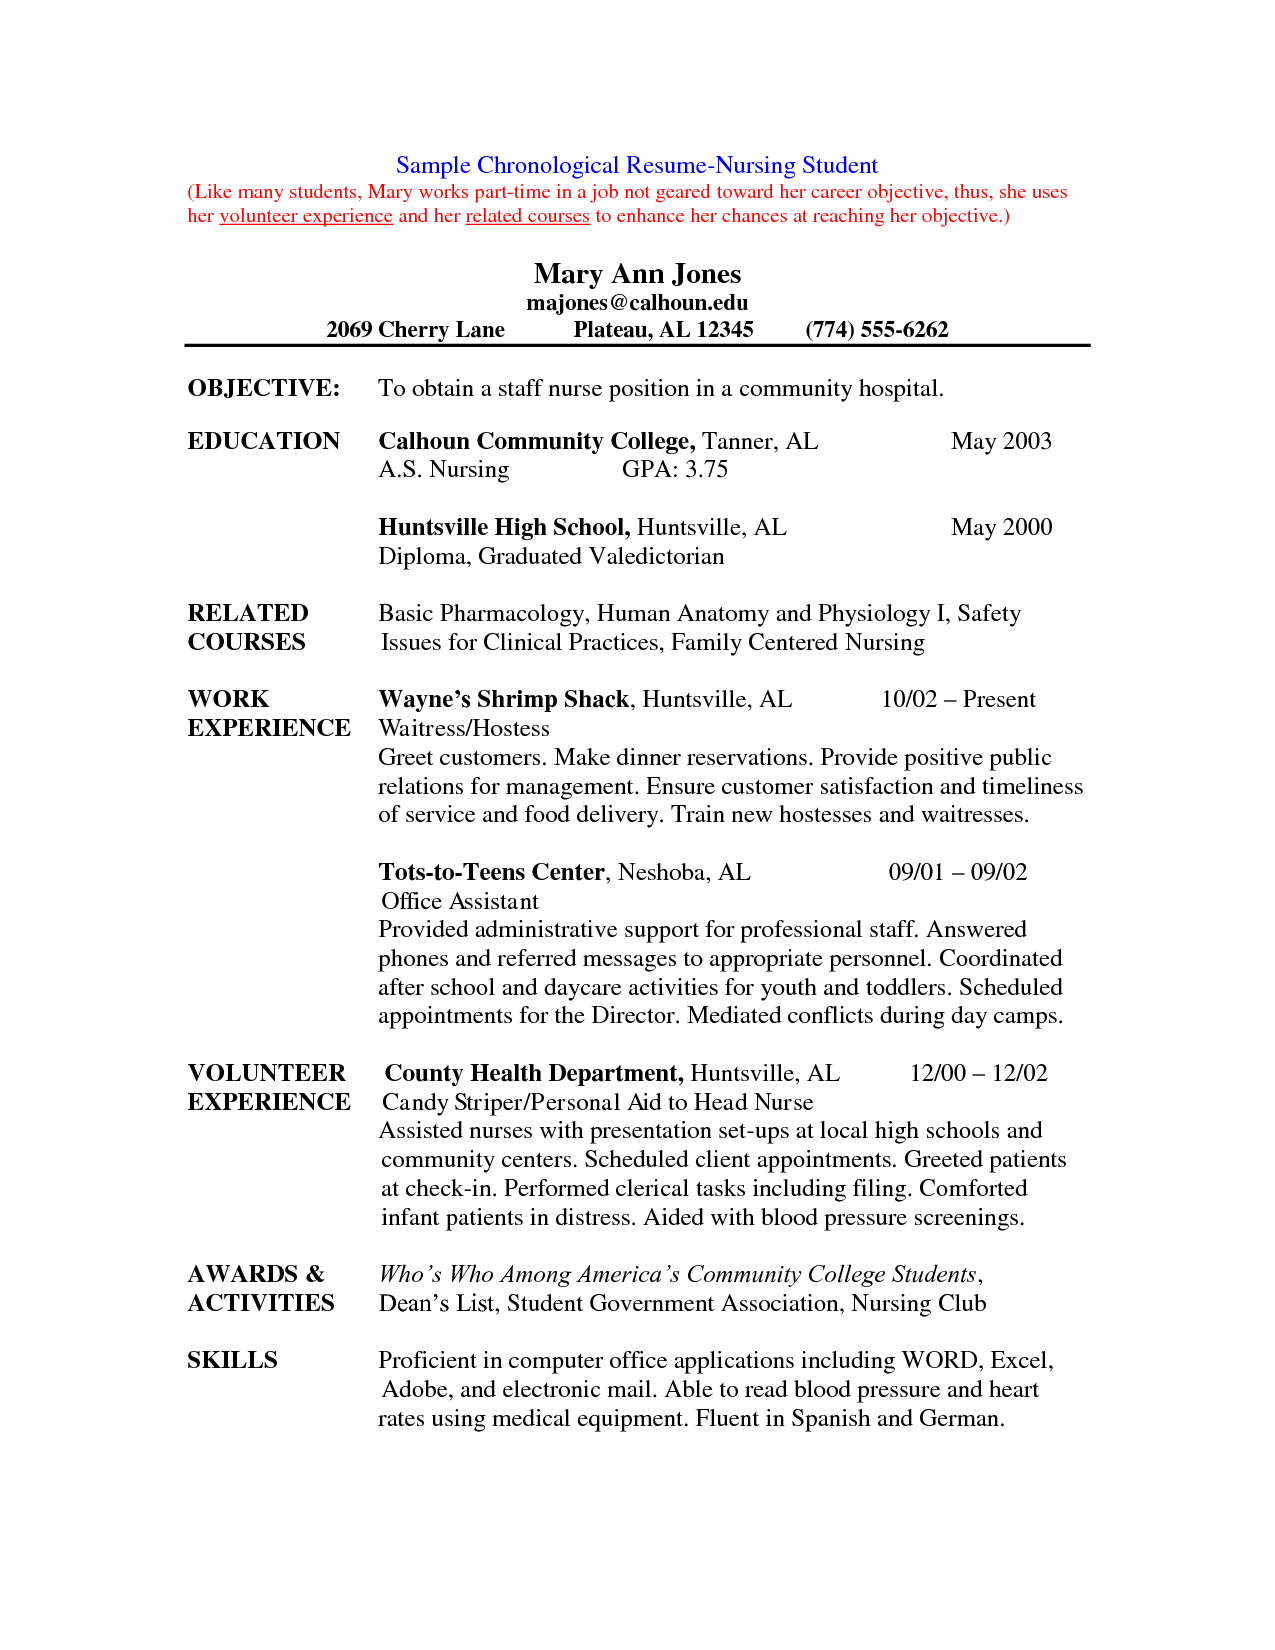 nursing student resume template hdresume templates cover letter  - sample of rn resume graduate nurse resume template resume for new nursegrad new grad